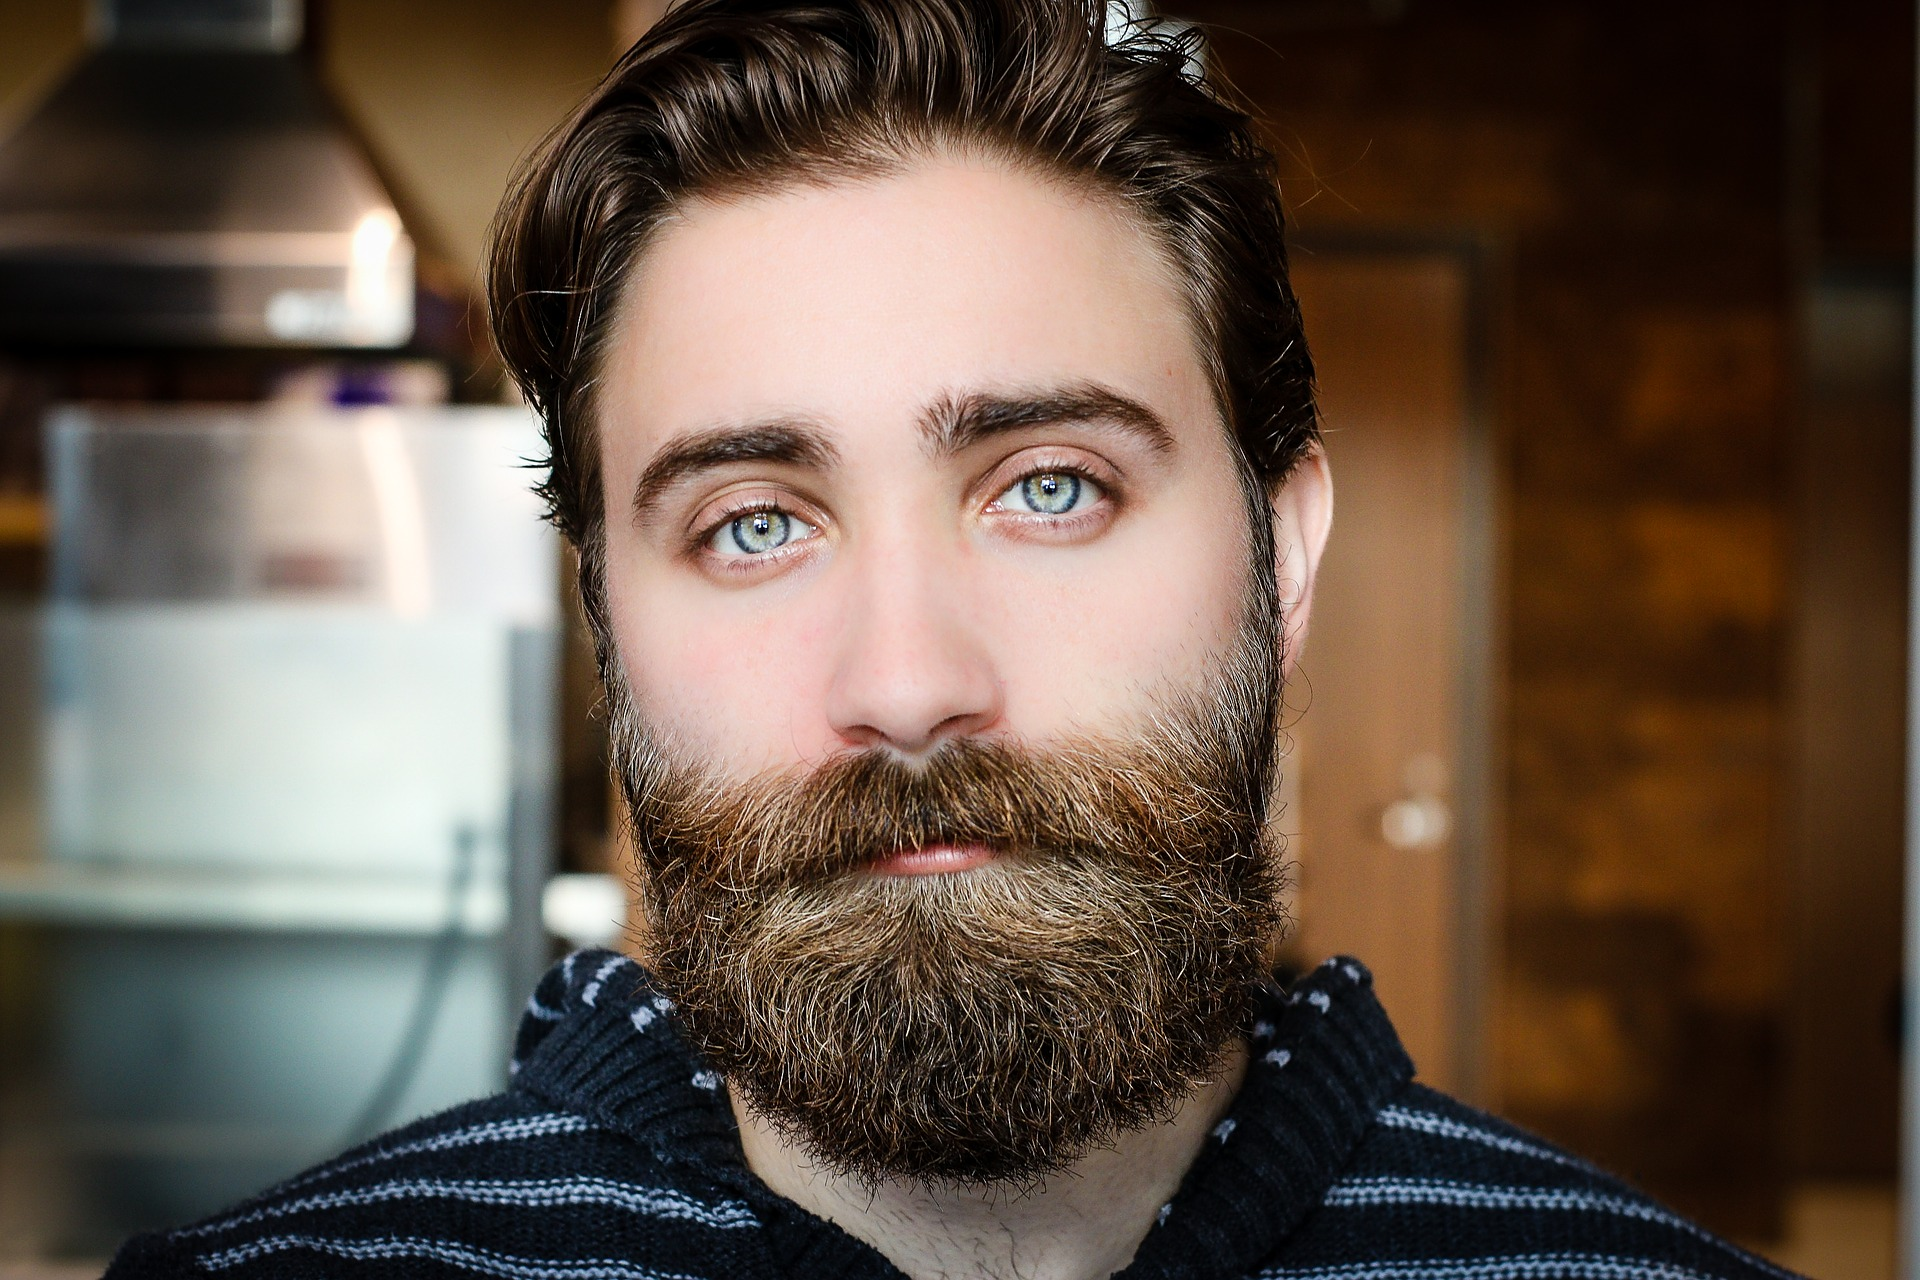 How to Grow Beard Faster - Growing a Beard Fast Just Got Easy With These Tips and Tricks